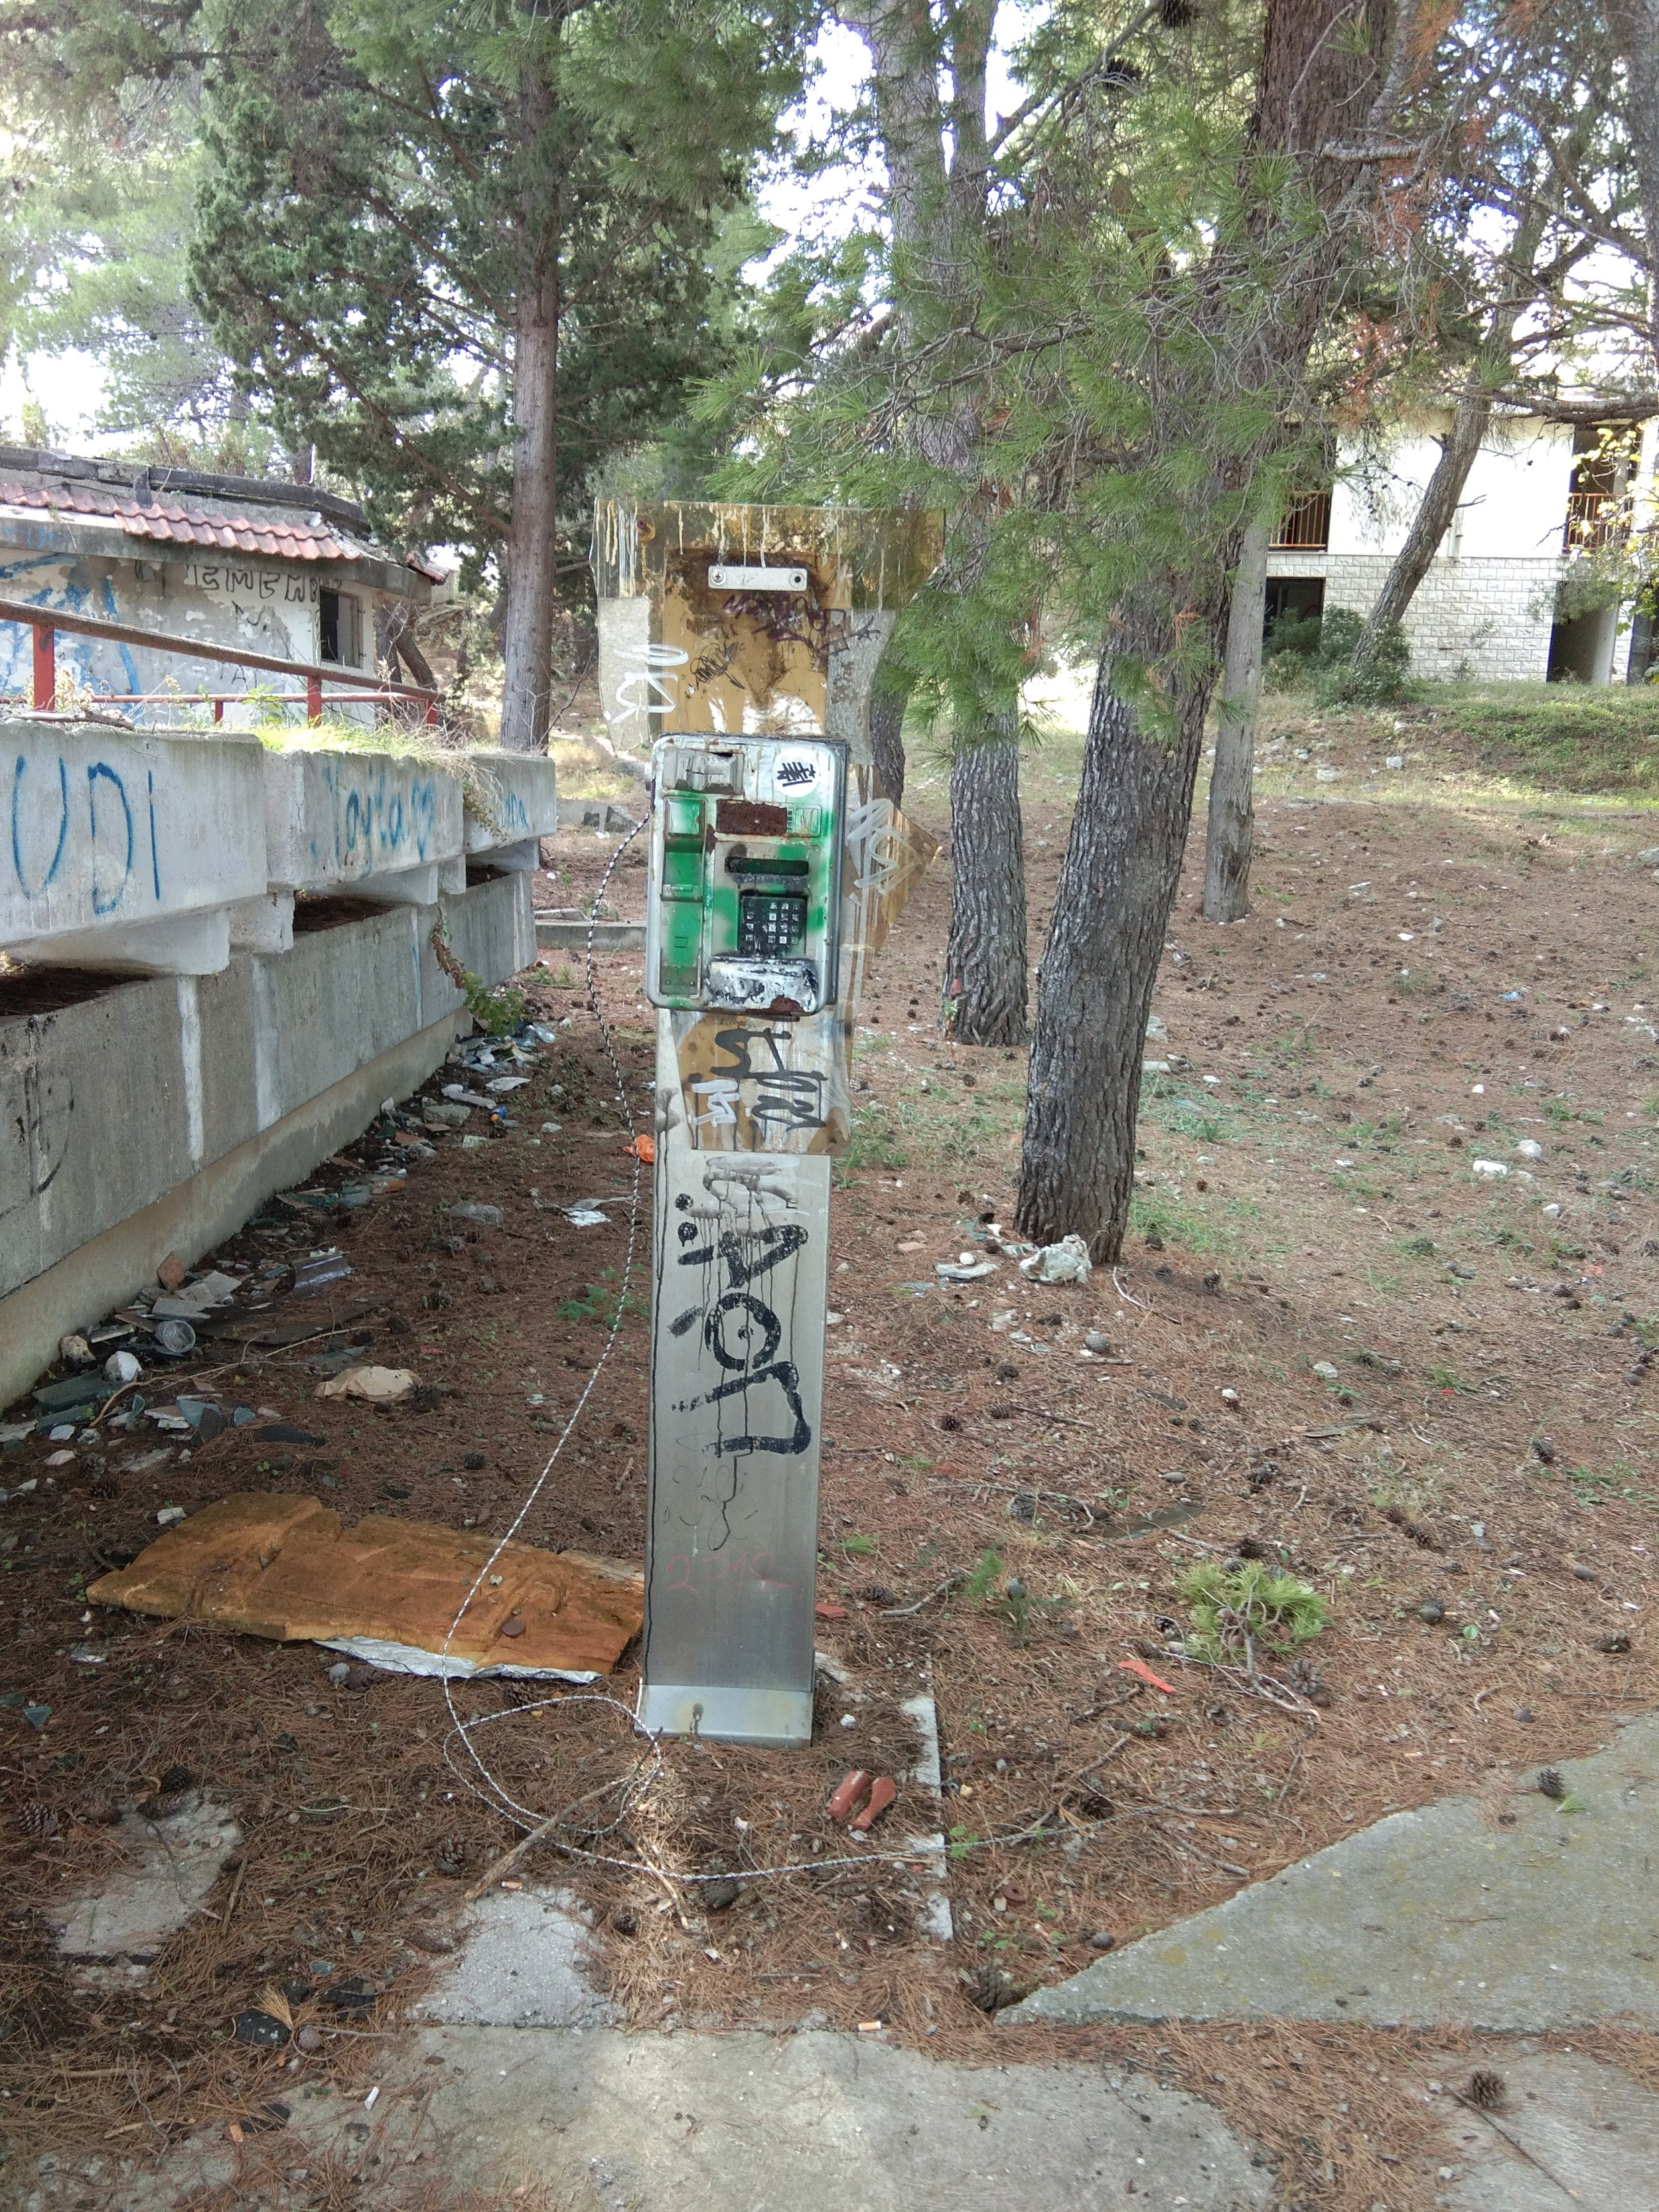 This is the payphone outside the abandoned hotel on Brac.